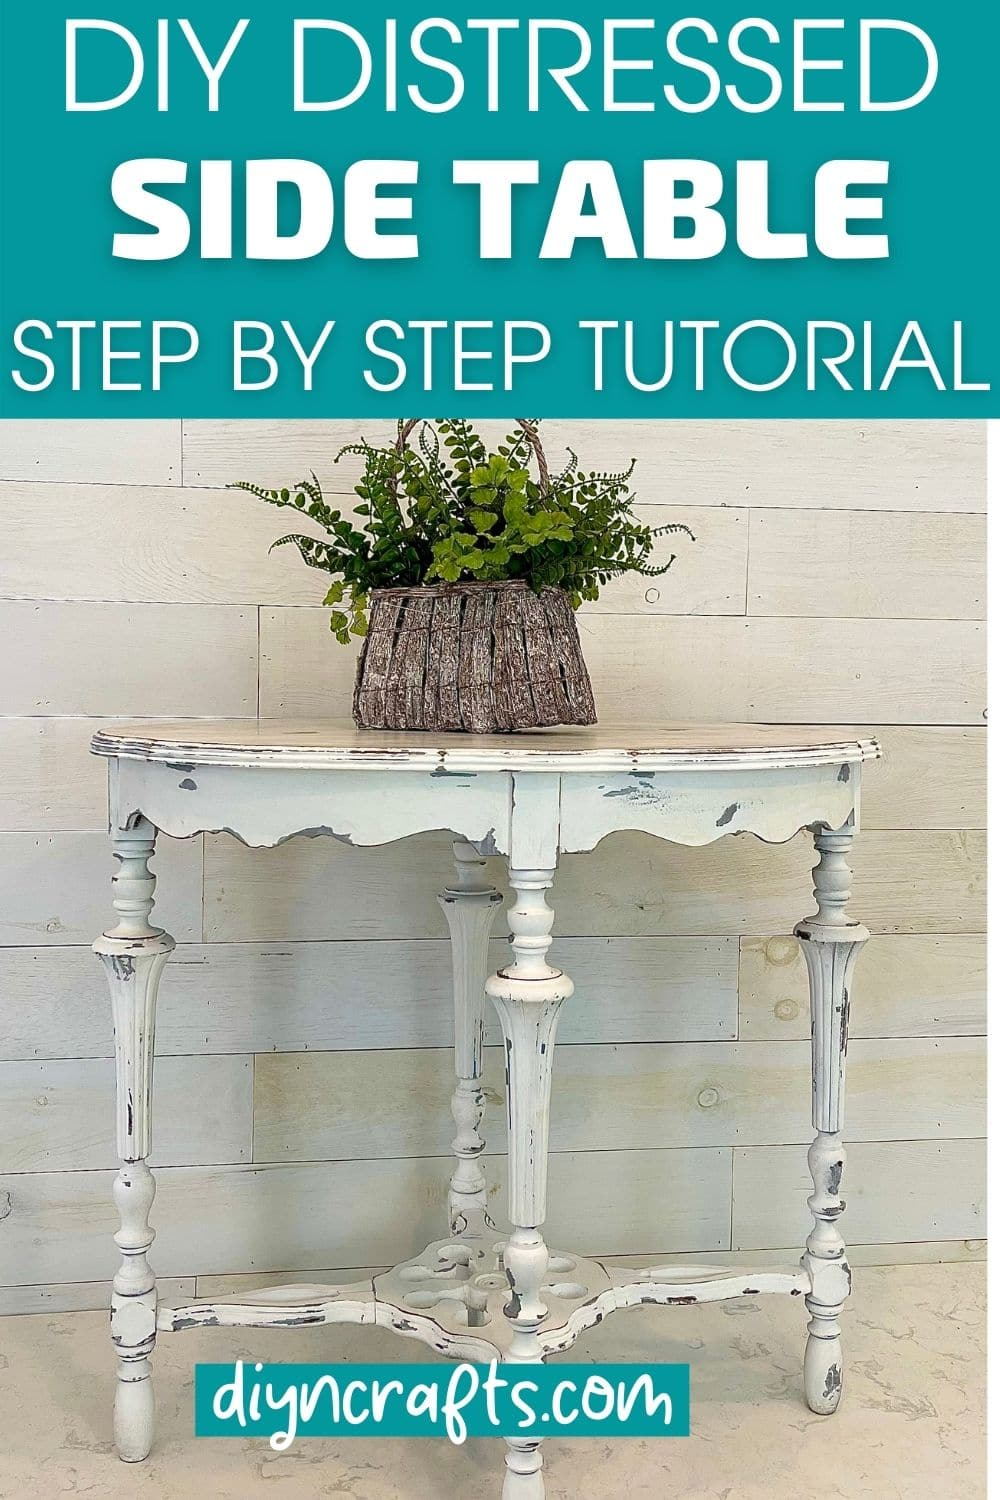 Basket of greenery on top of distressed white side table